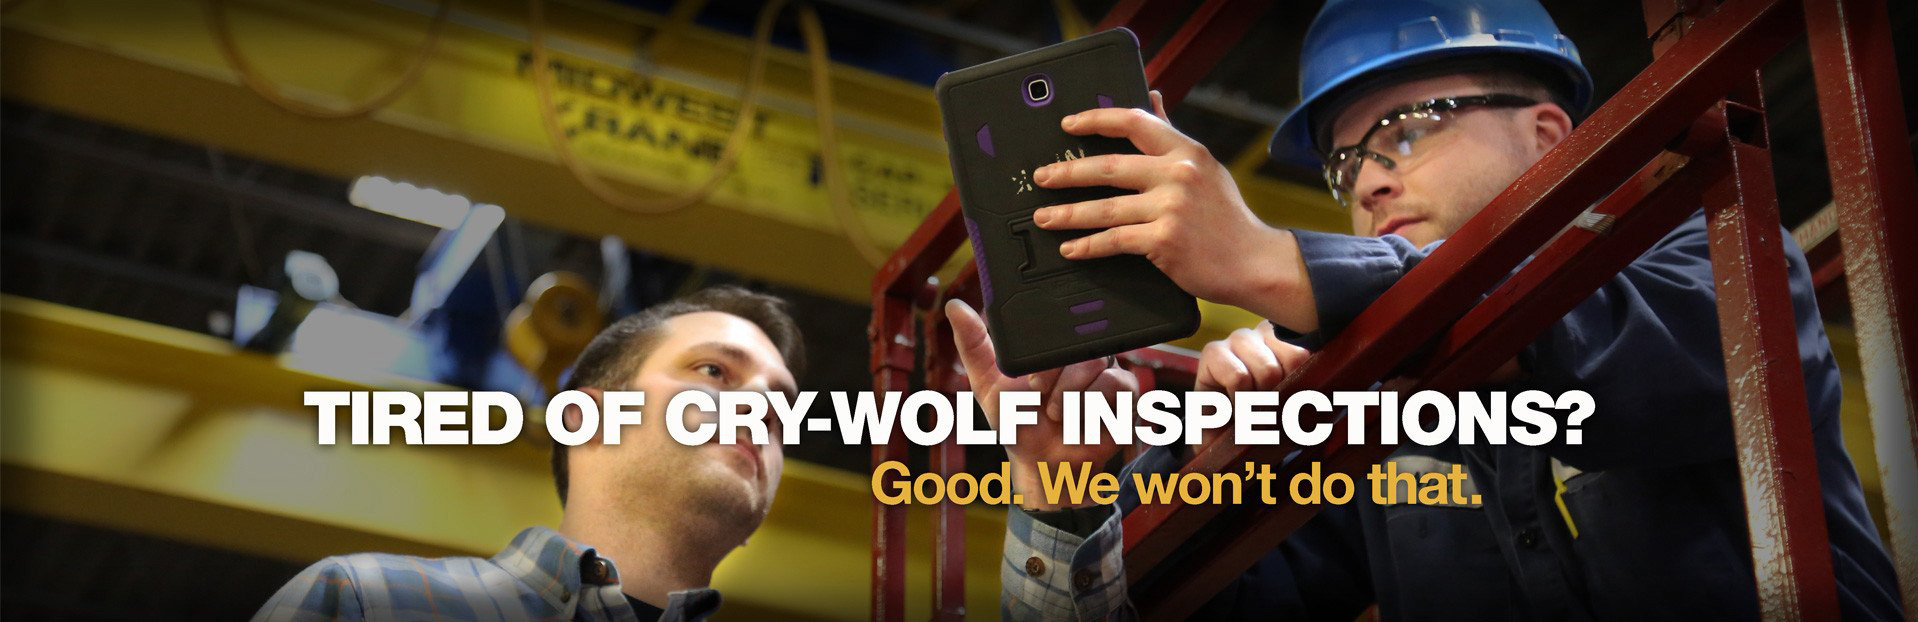 Tired of cry-wolf inspections? Good. We won't do that.